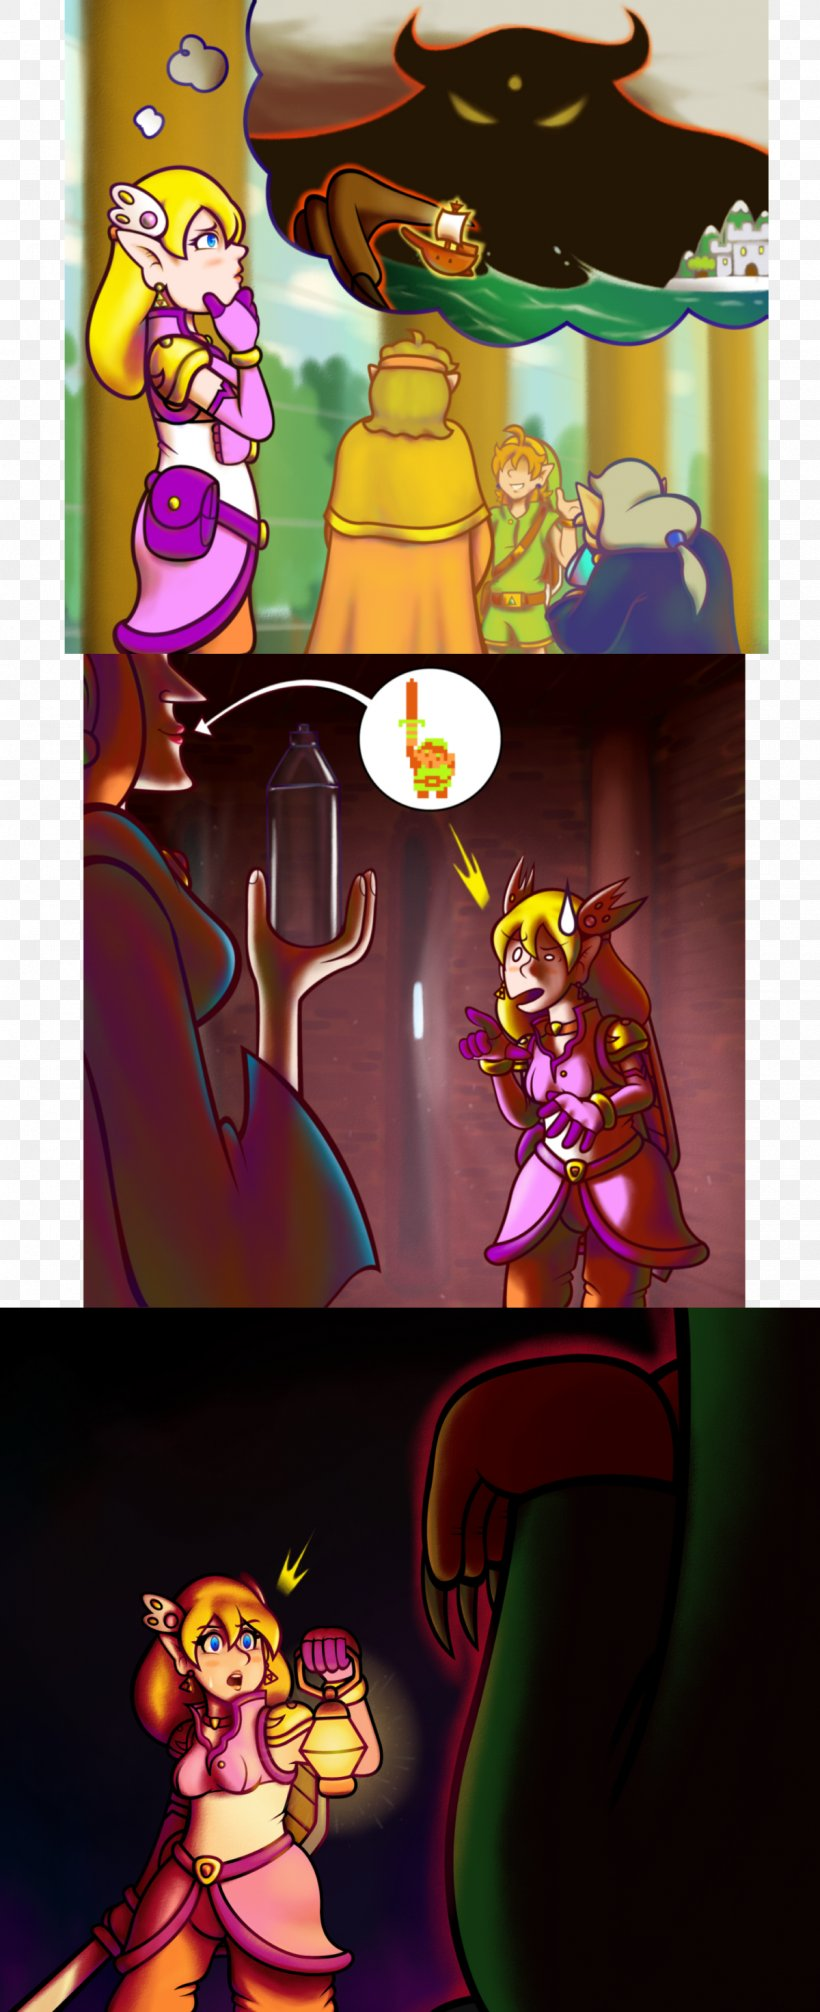 Zelda The Wand Of Gamelon Link The Faces Of Evil Princess